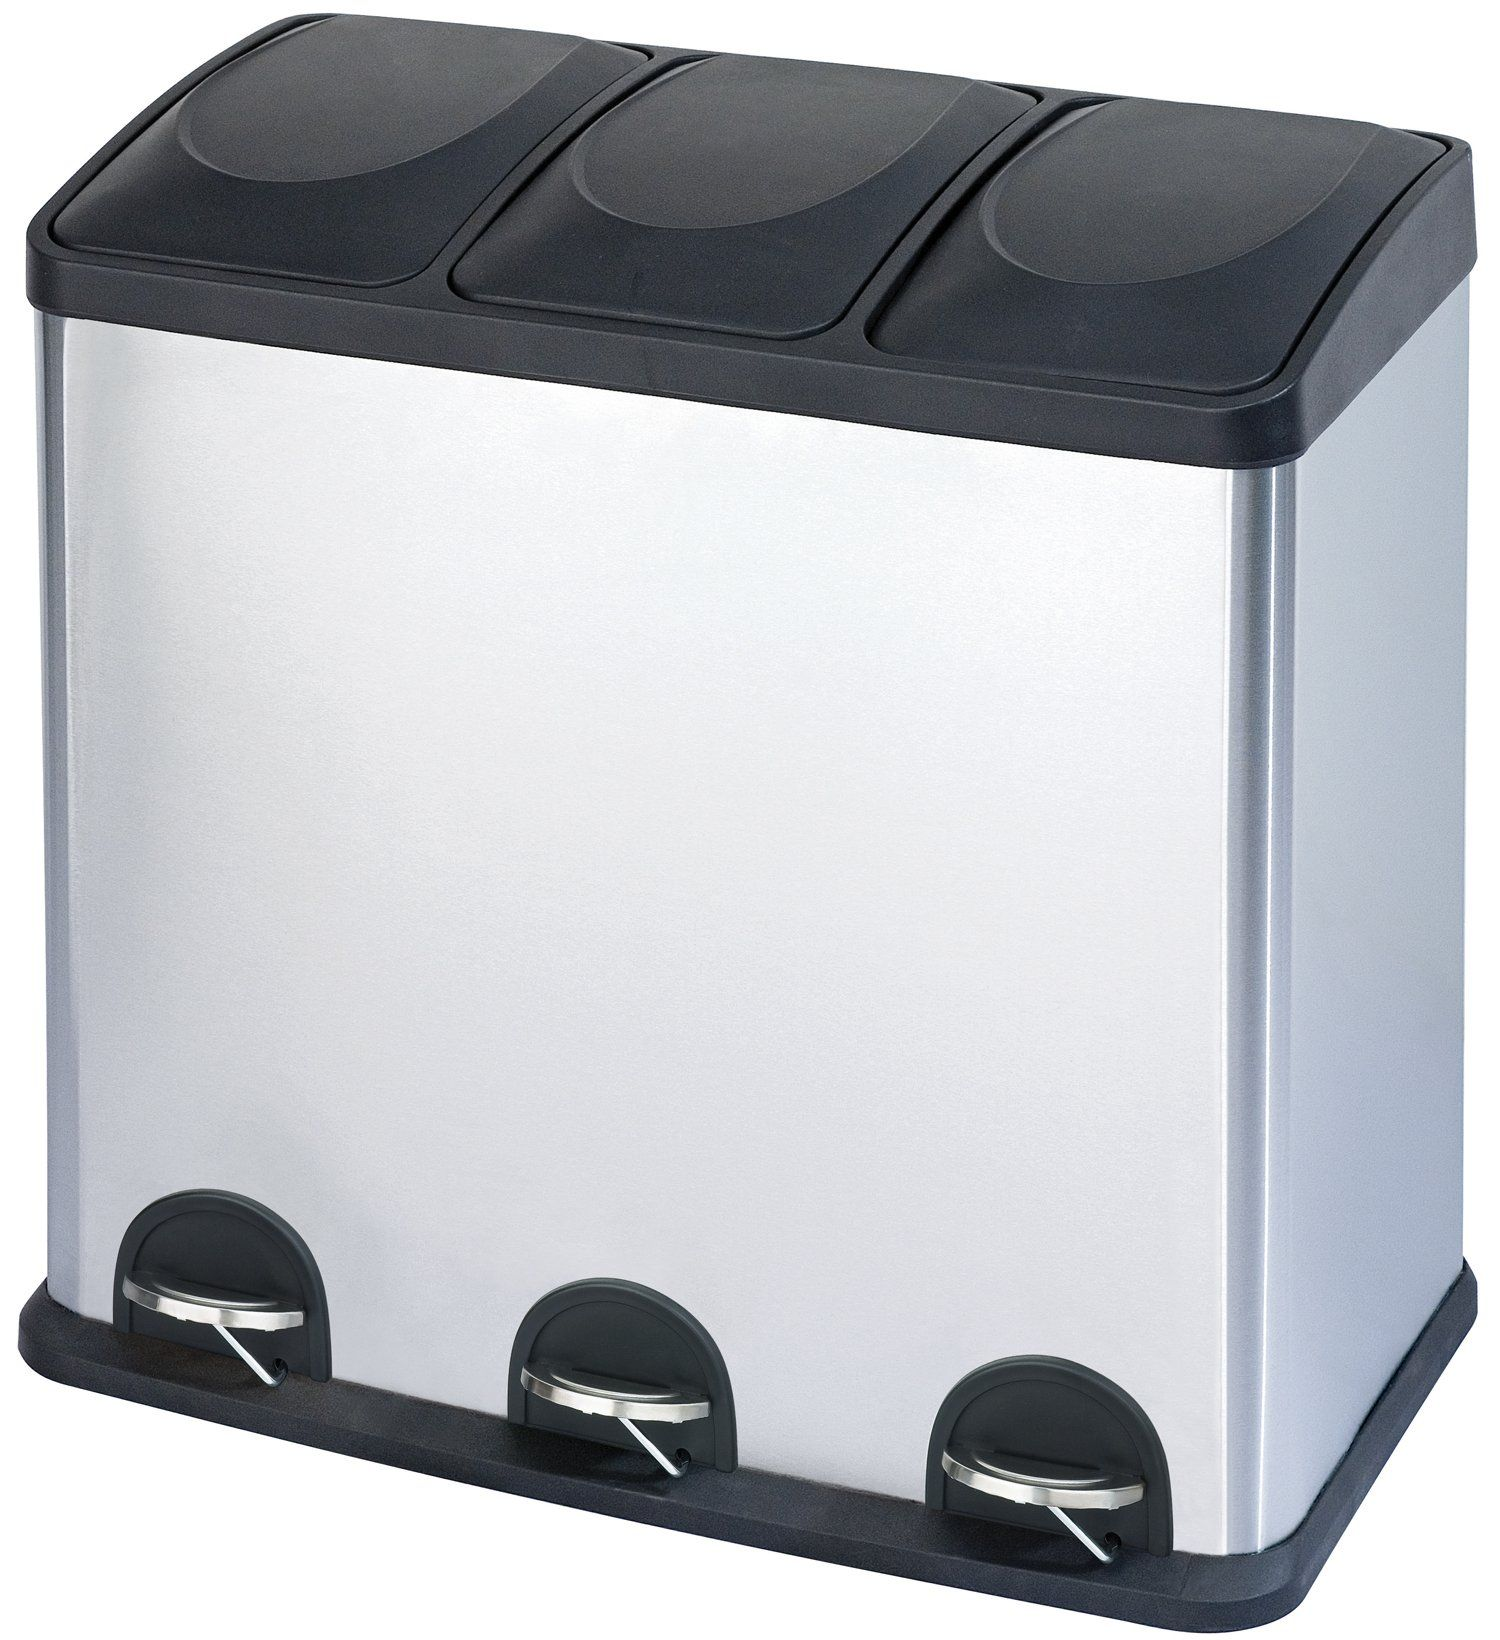 Good Chiasso Trio Recycling Bin   Contemporary   Waste Baskets     By Chiasso